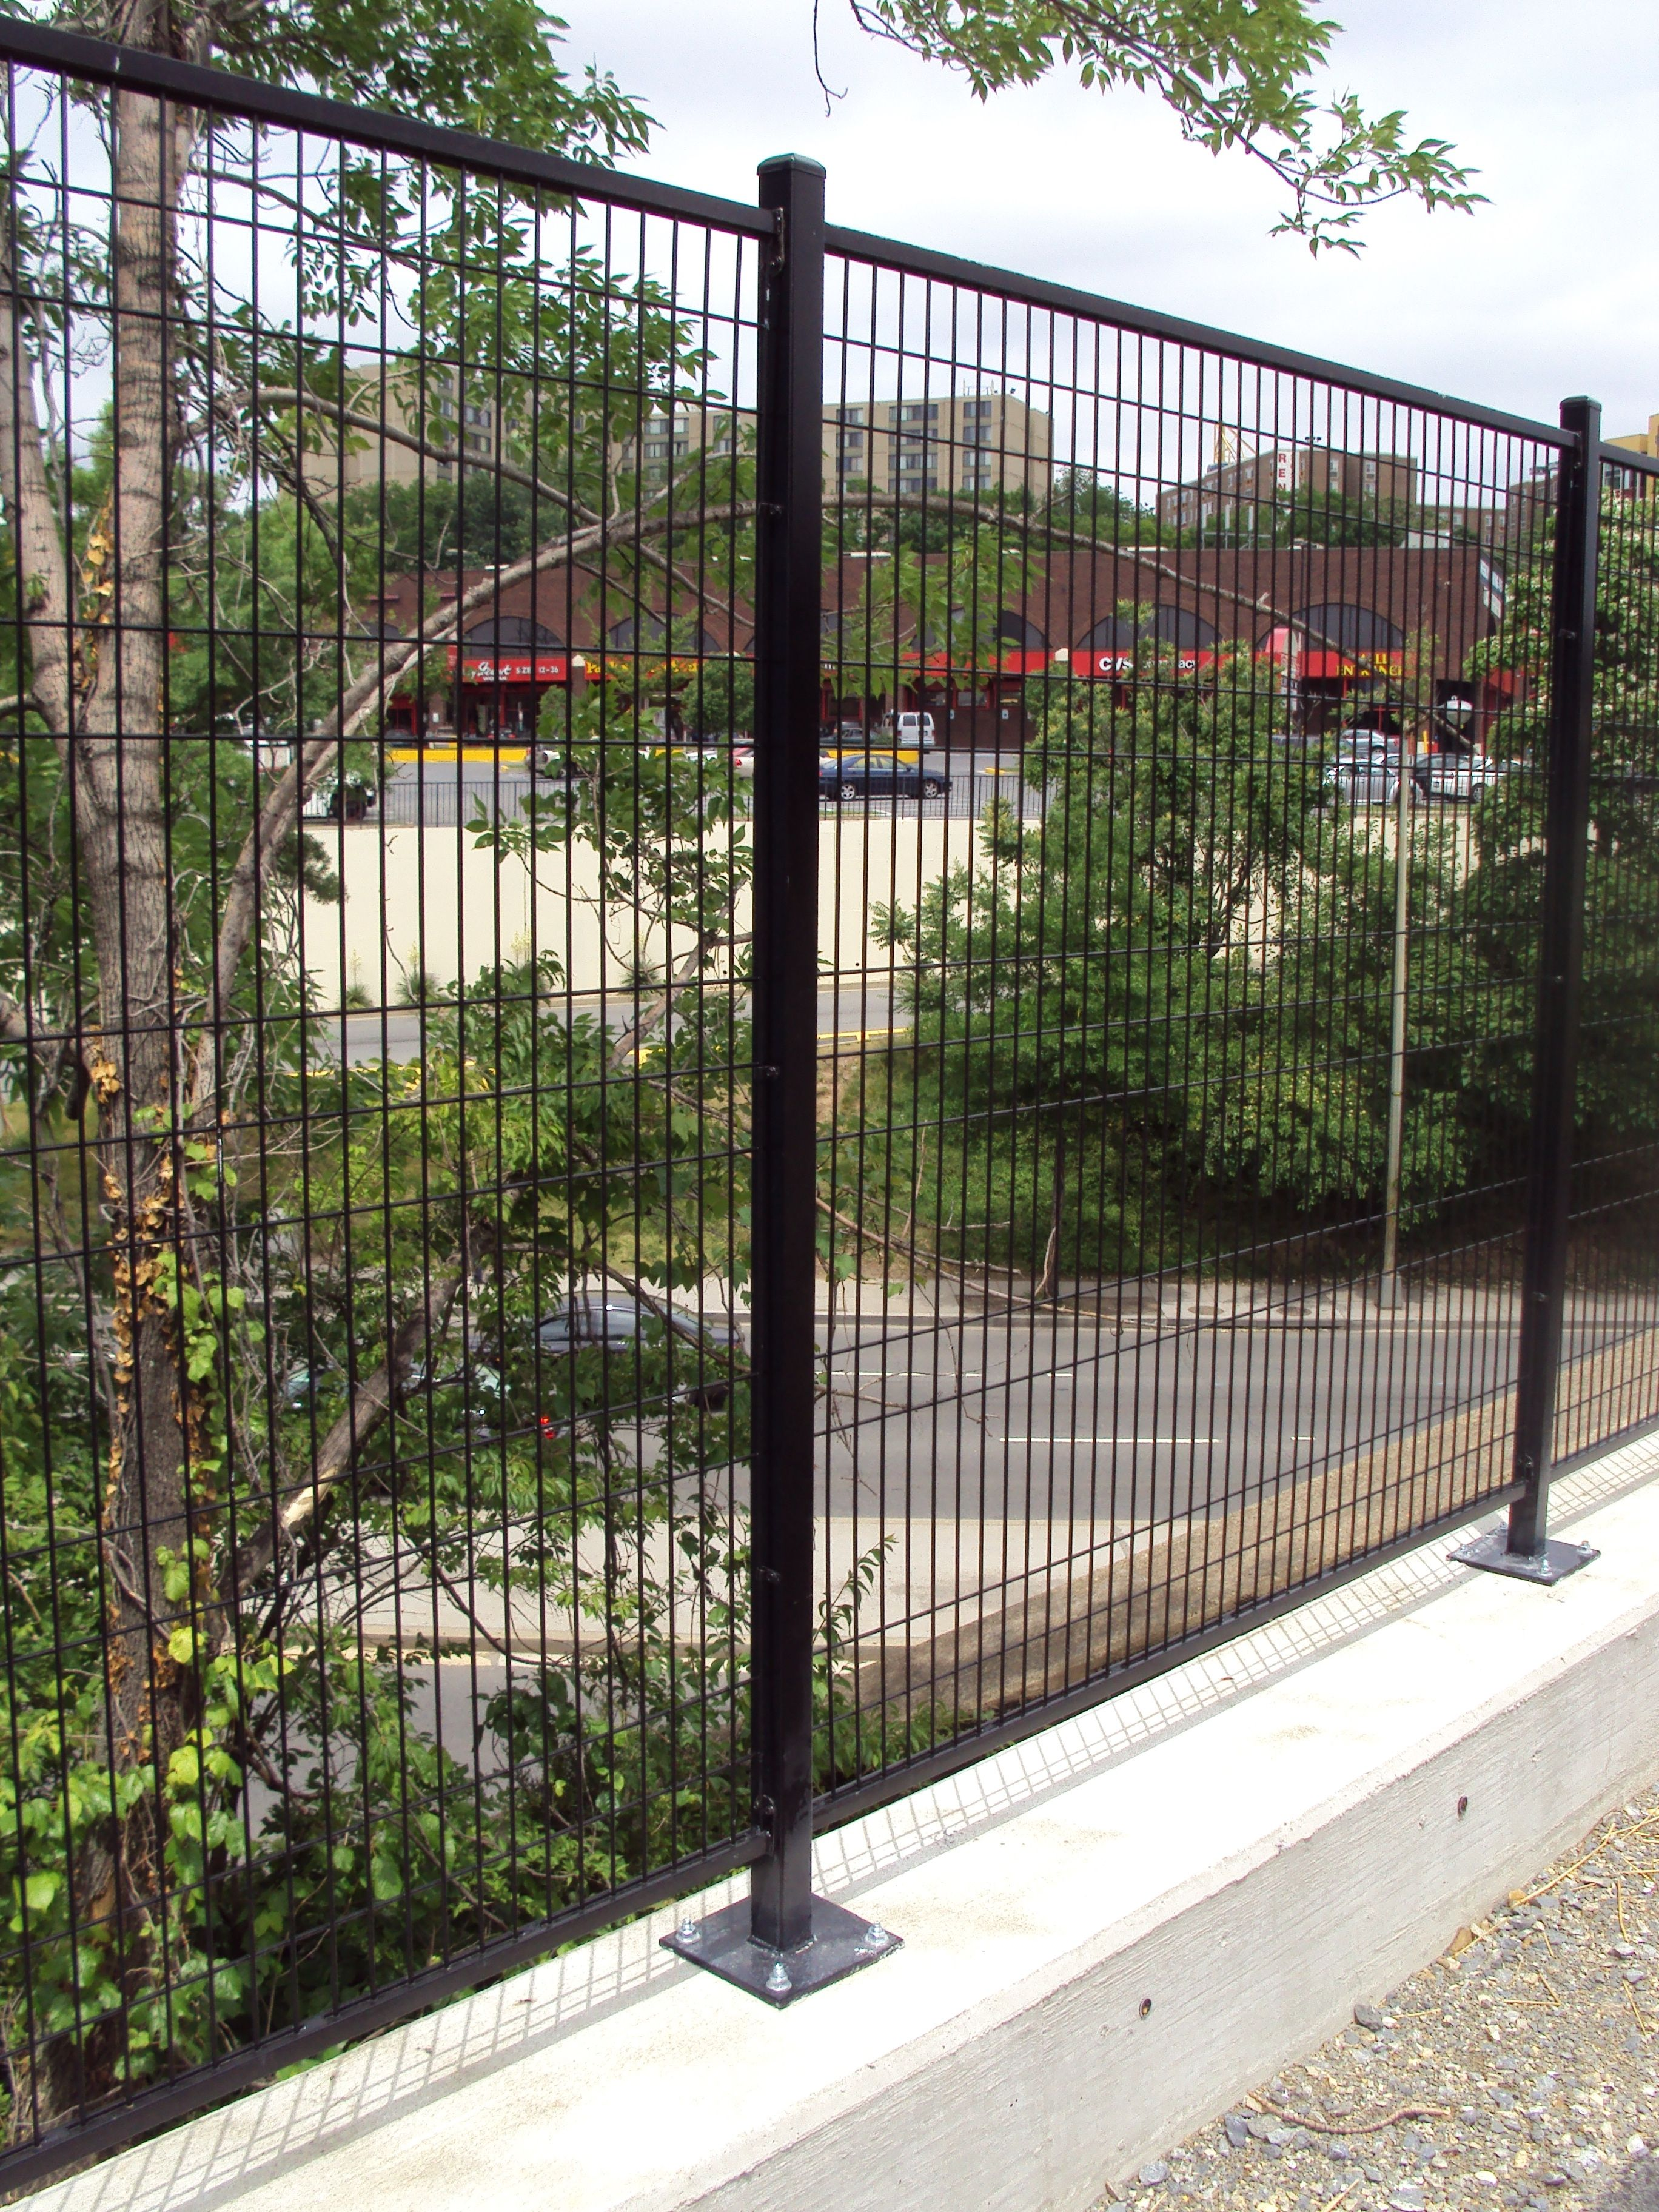 Ornamental Wire Fencing | 60 High 6 Gauge In Black Patriot Ornamental Wire Fence